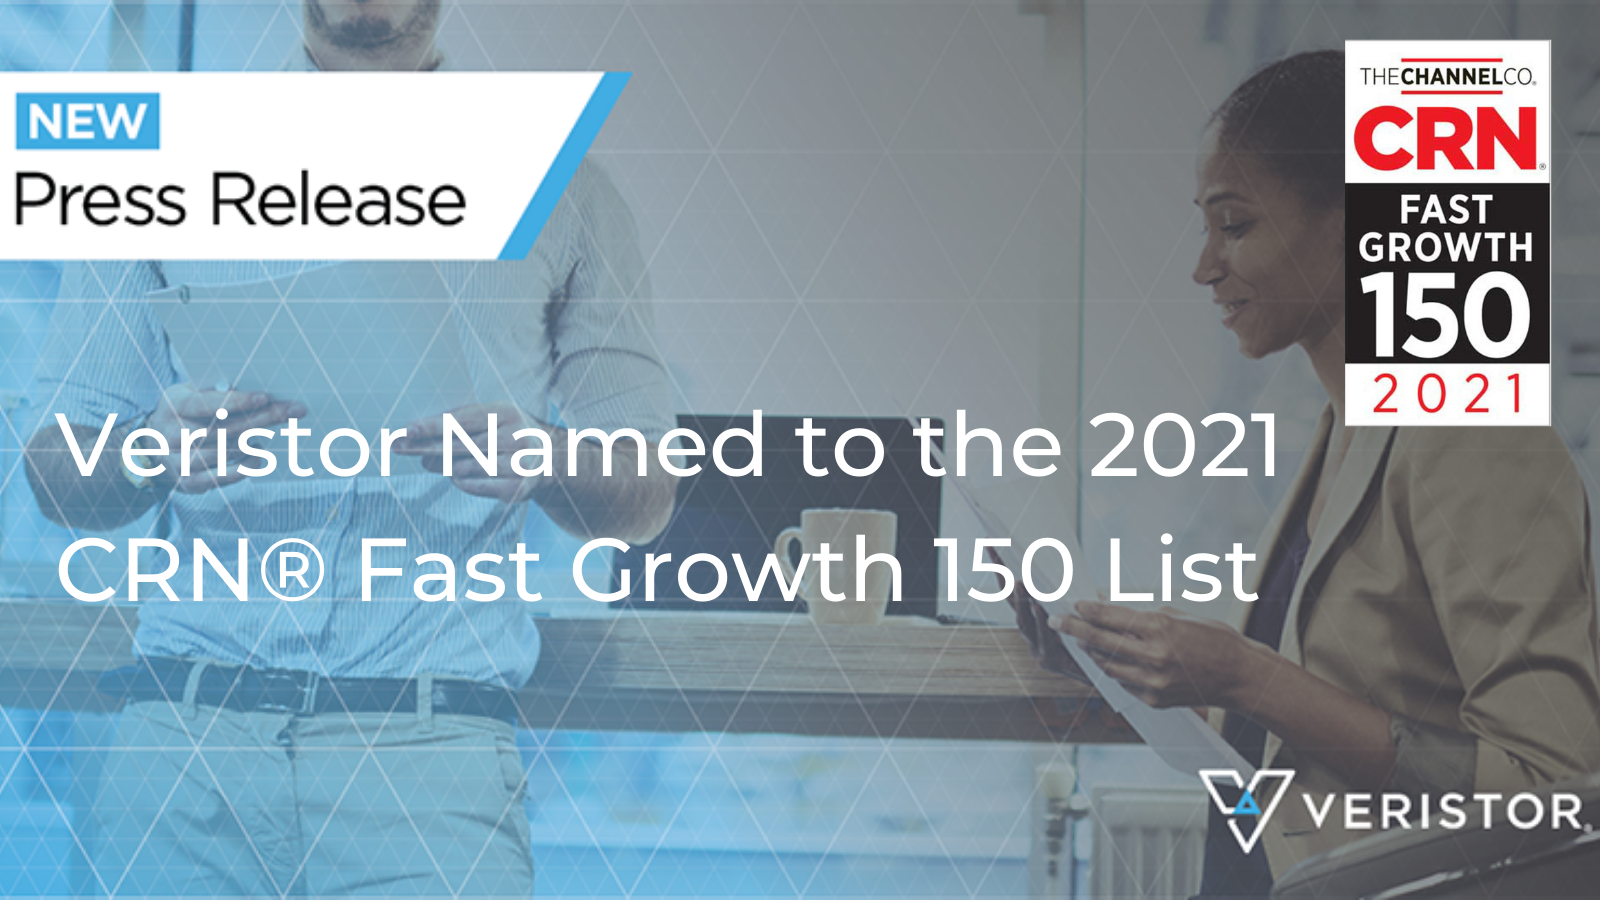 Veristor Named to the 2021 CRN® Fast Growth 150 List